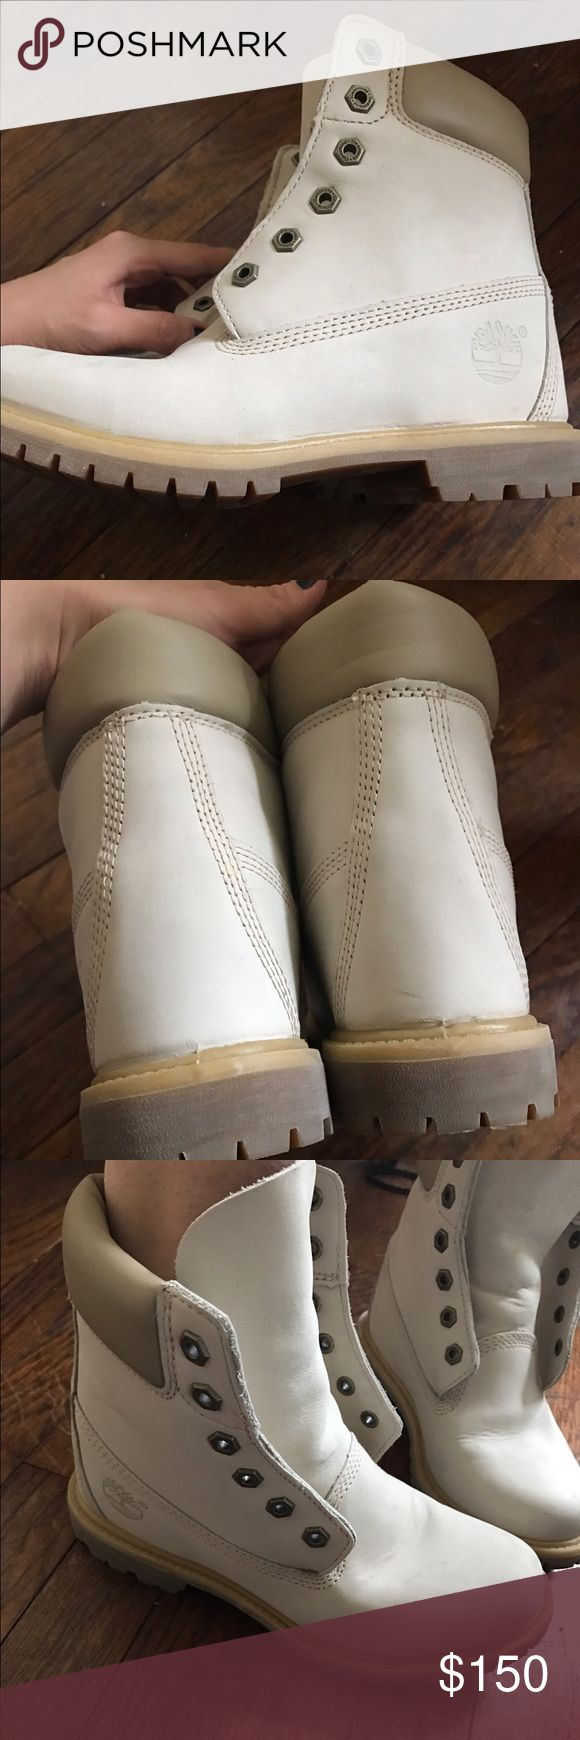 White timberlands! White nubuck timberlands with internal wedge. Don't fit me right but are super cute and perfect for winter. Worn once!! Timberland Shoes Winter & Rain Boots